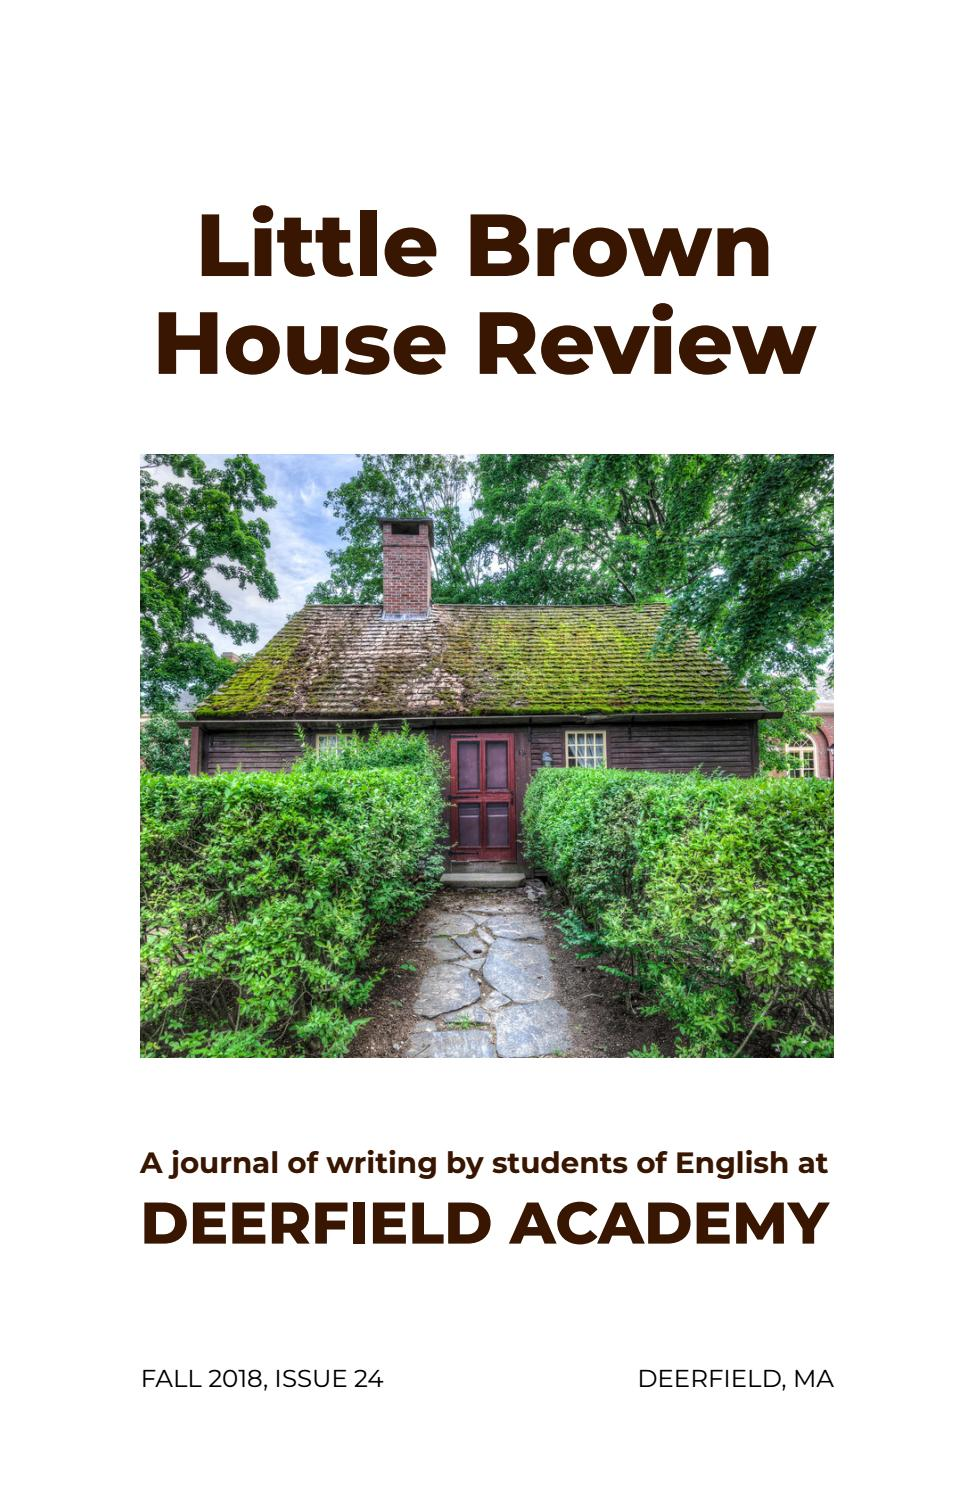 2e8f85e919 Little Brown House Review 24 by Deerfield Academy - issuu